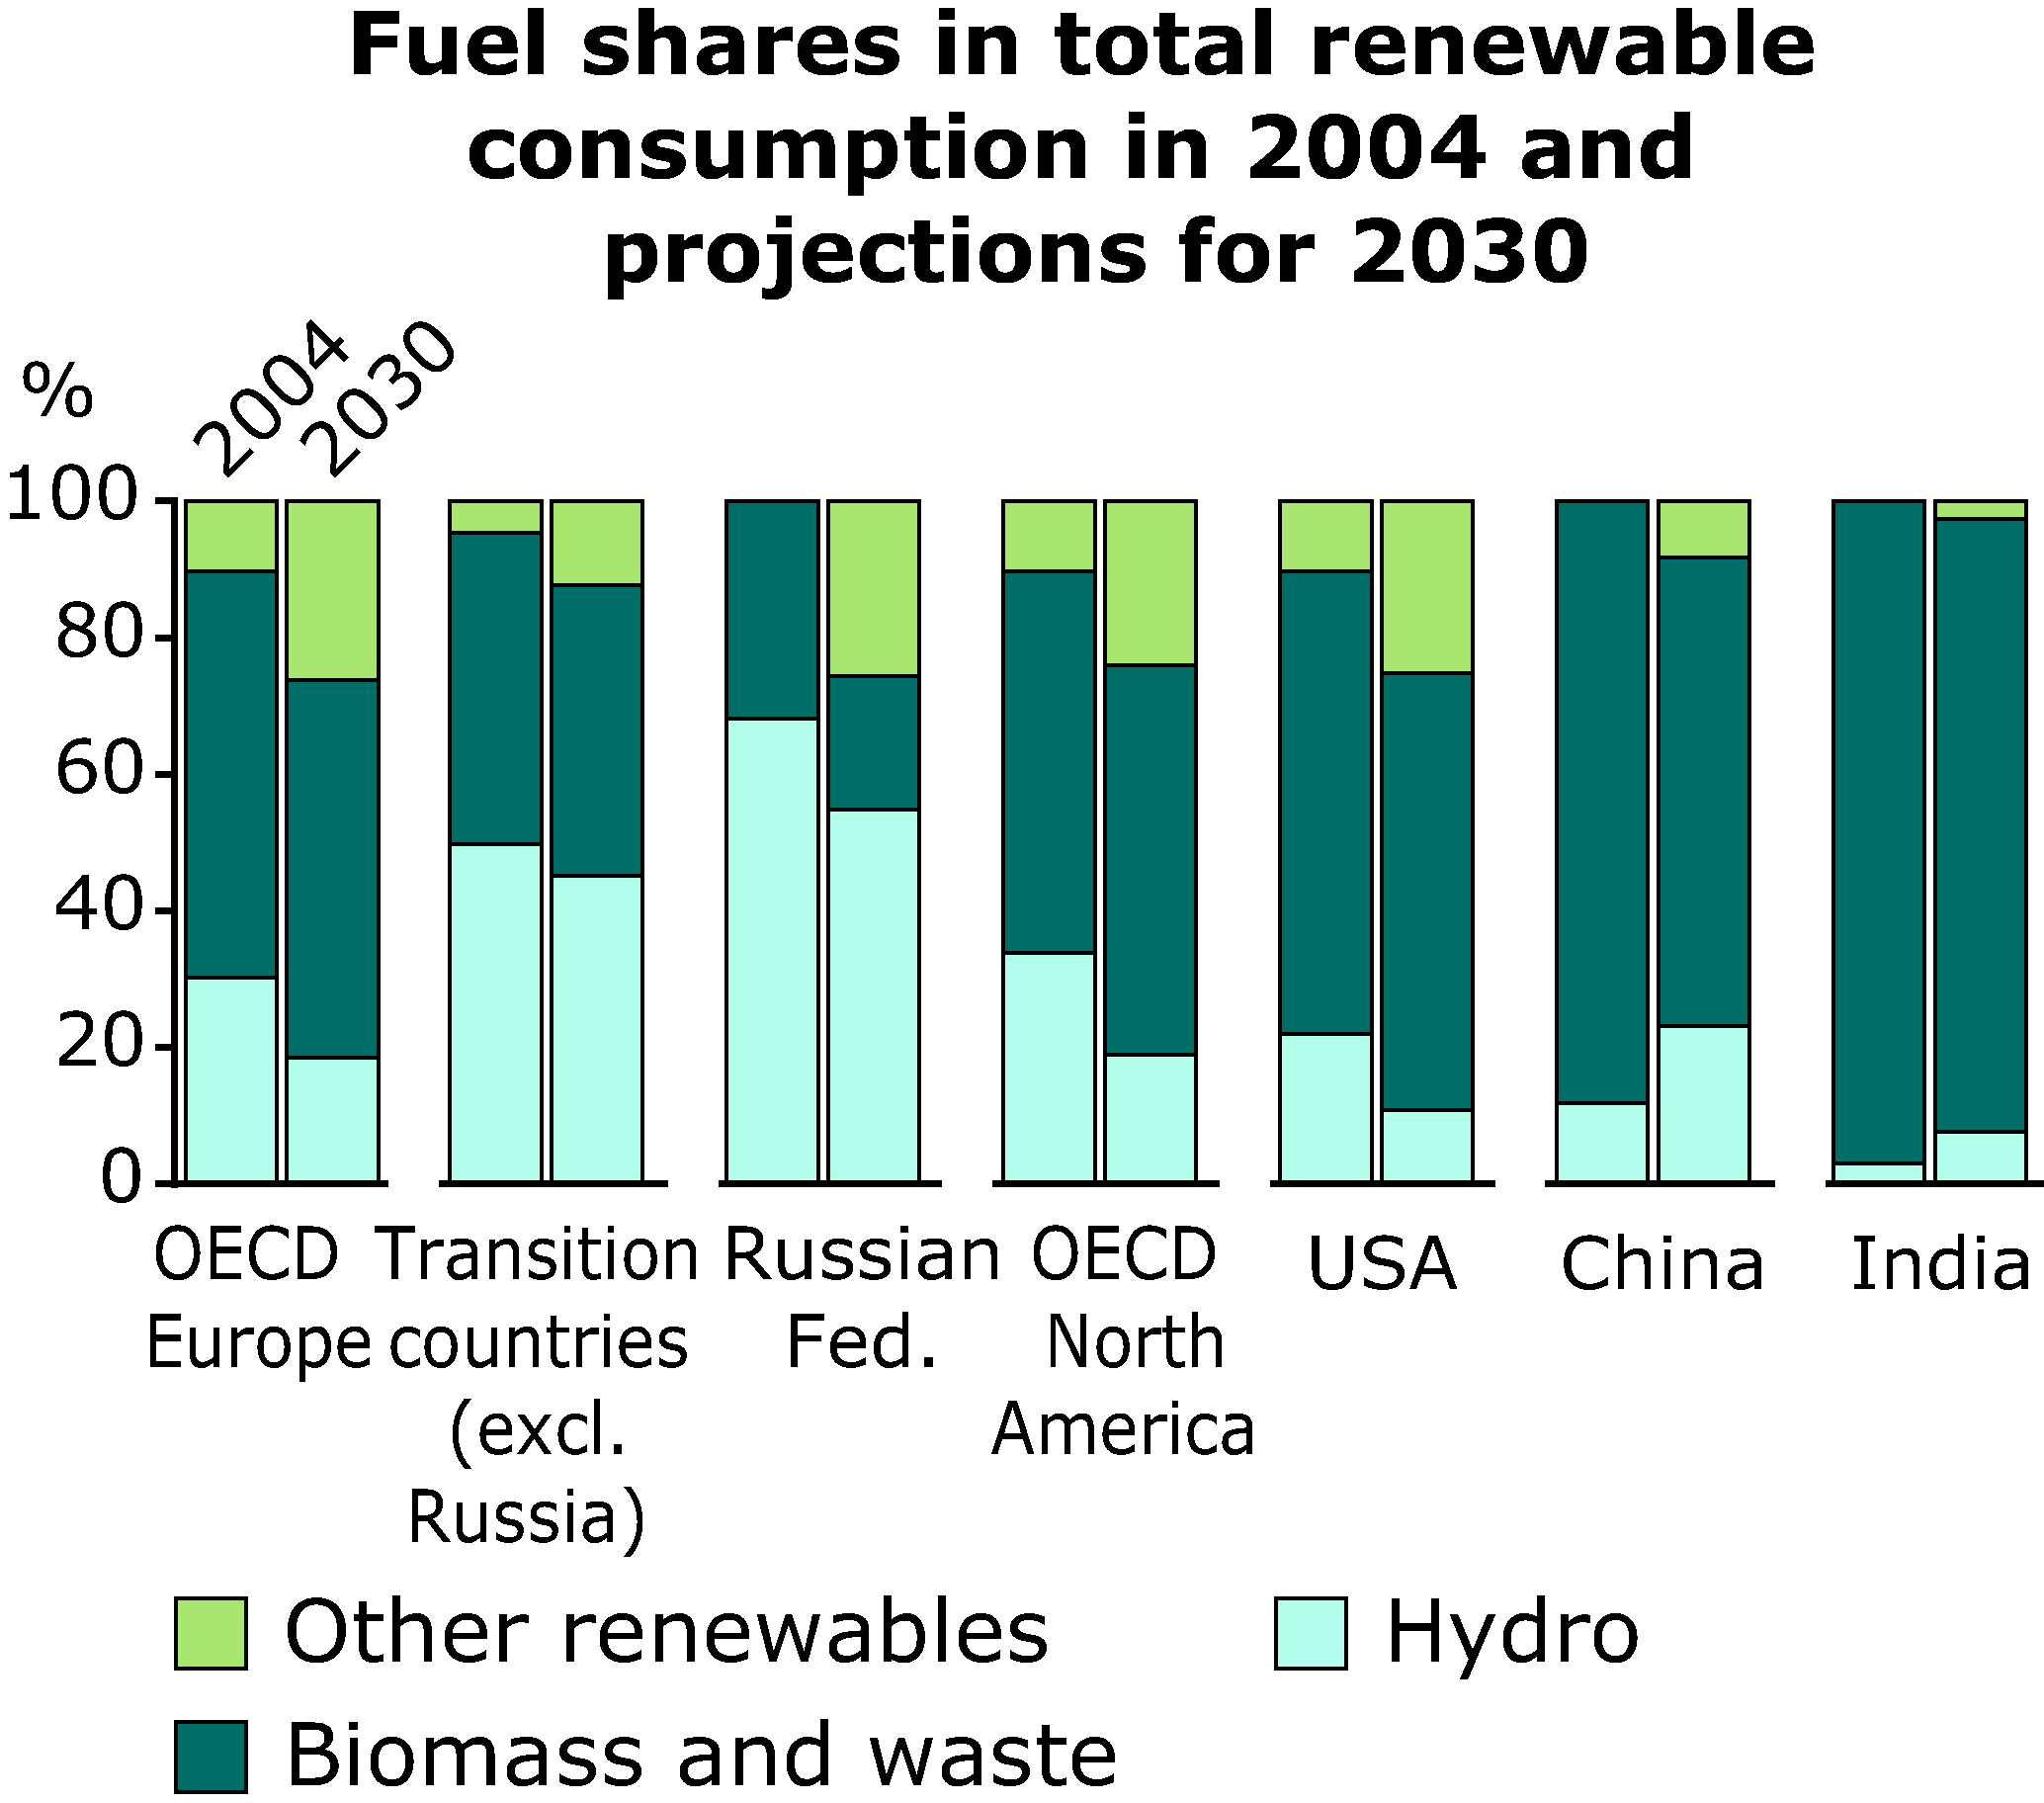 Fuel shares in total renewable consumption in 2004 and projections for 2030